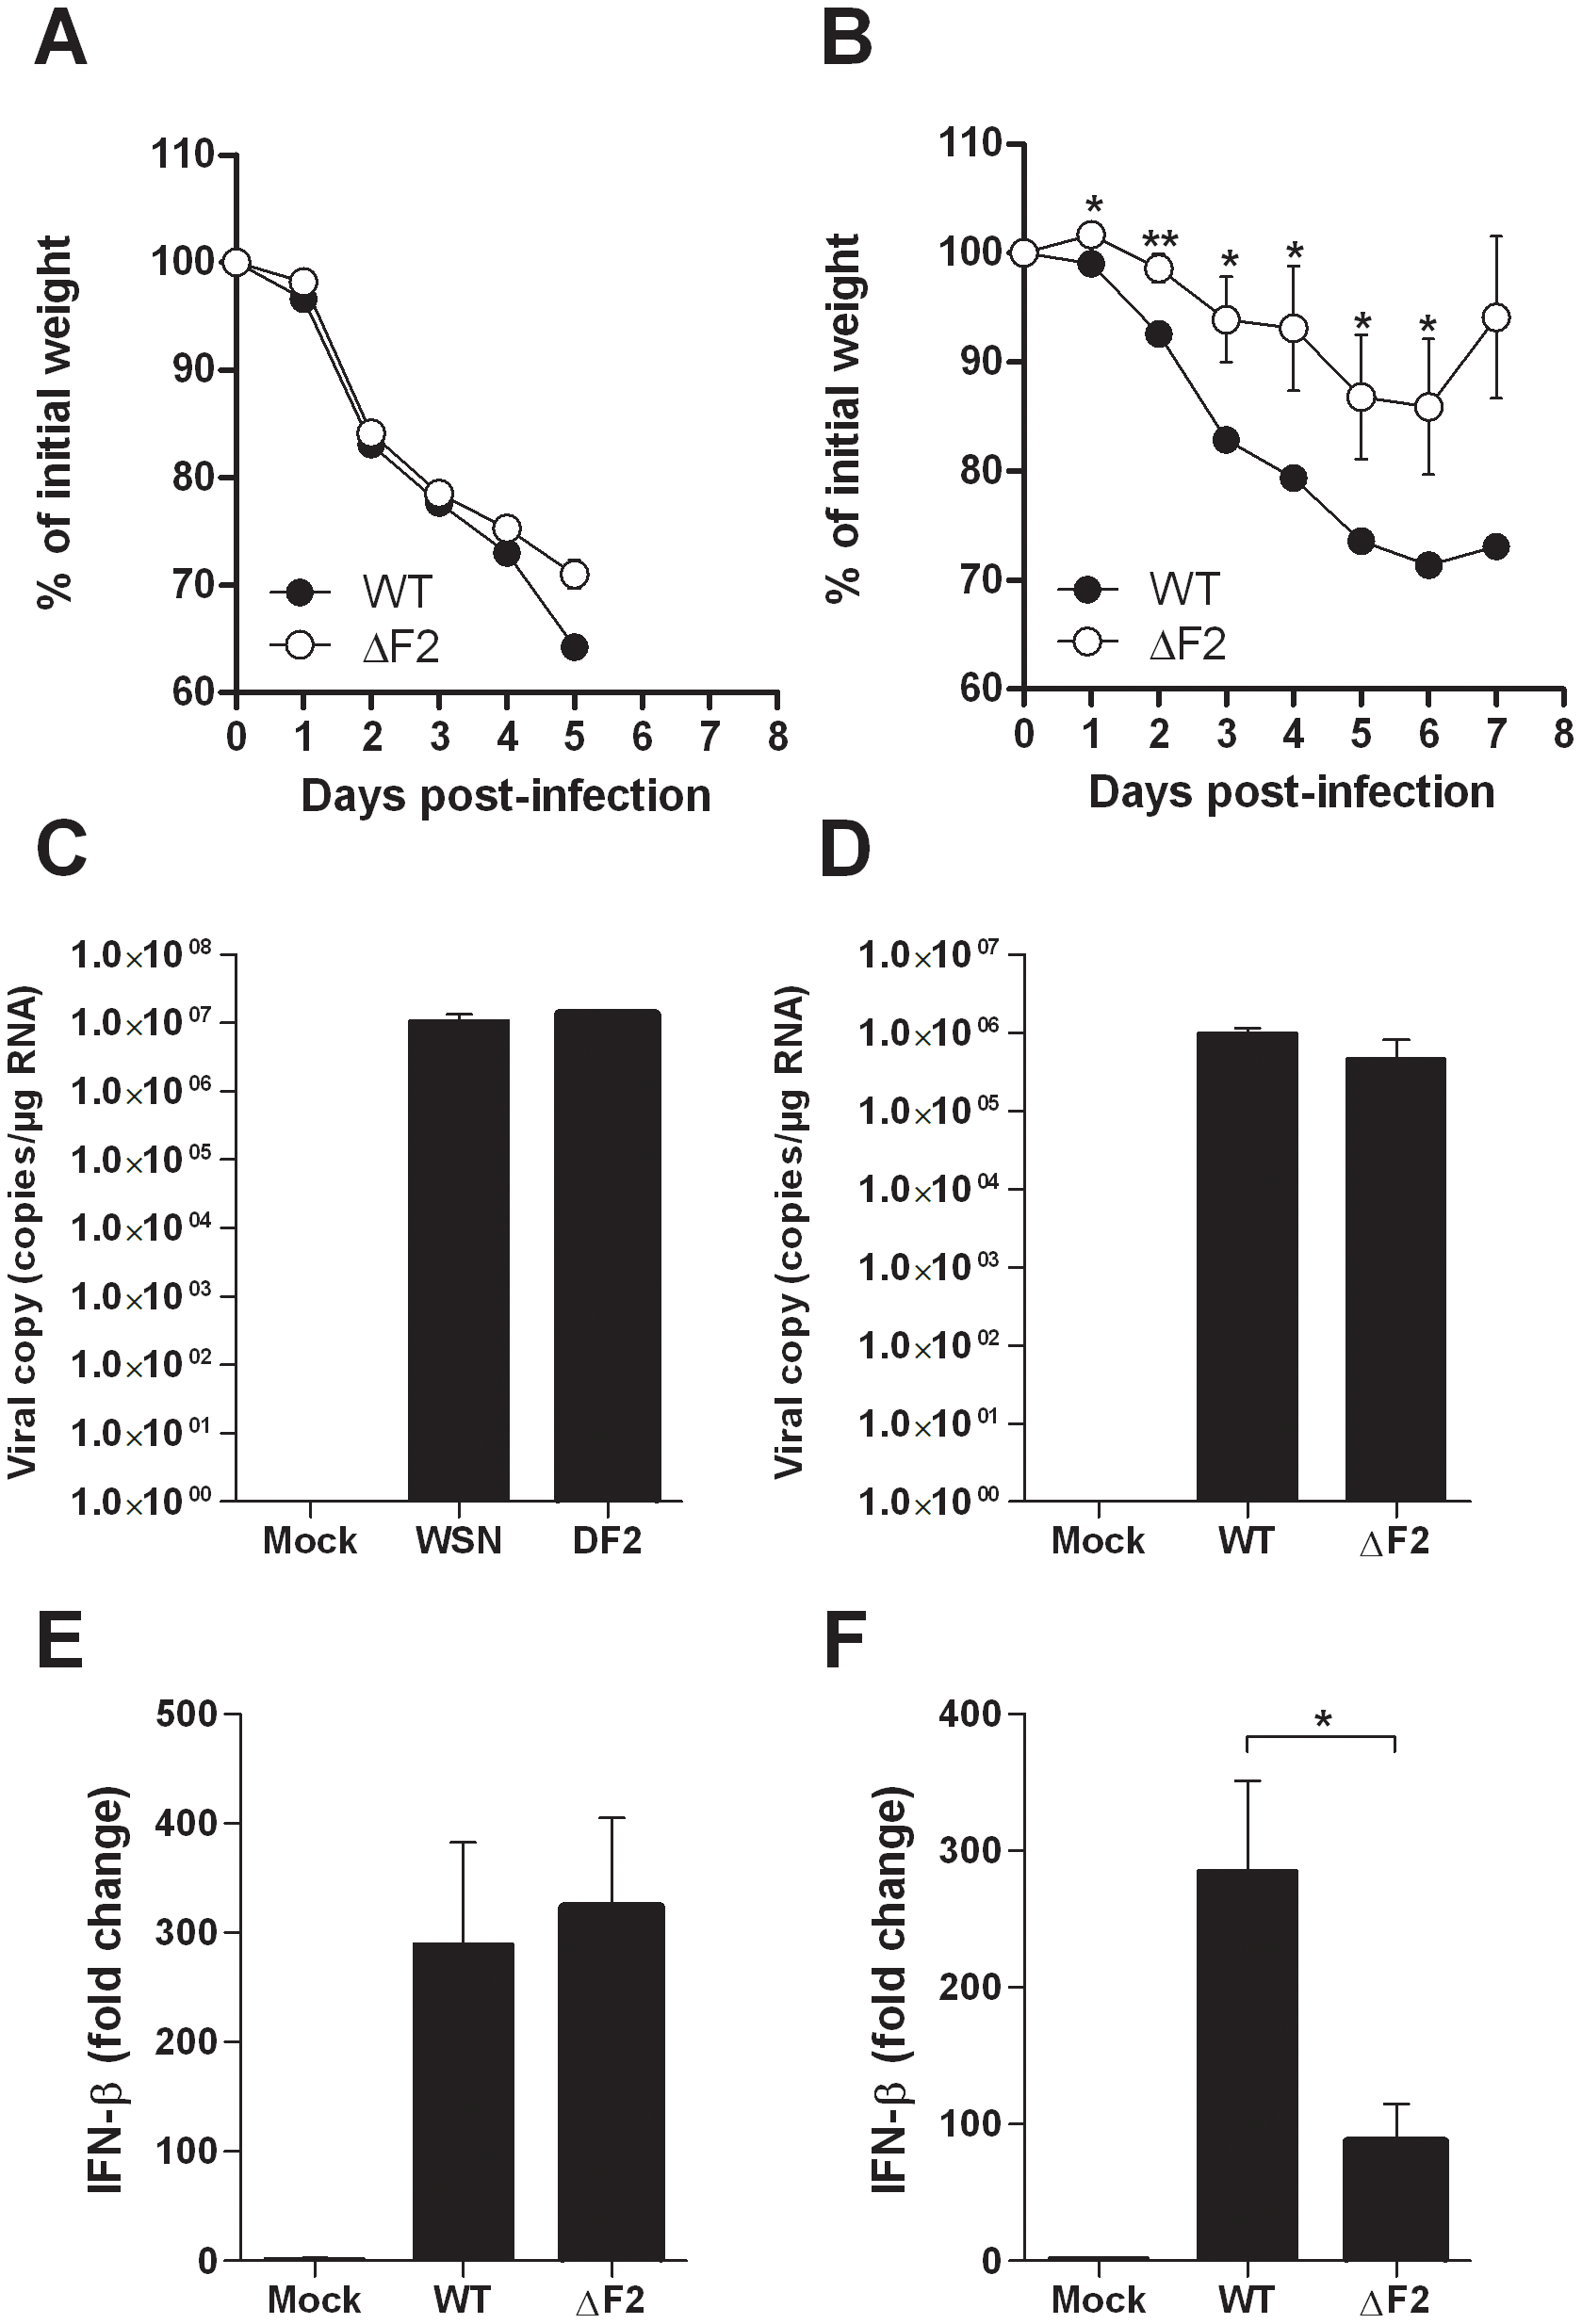 Effect of PB1-F2 expression on pathogenicity during IAV infection.